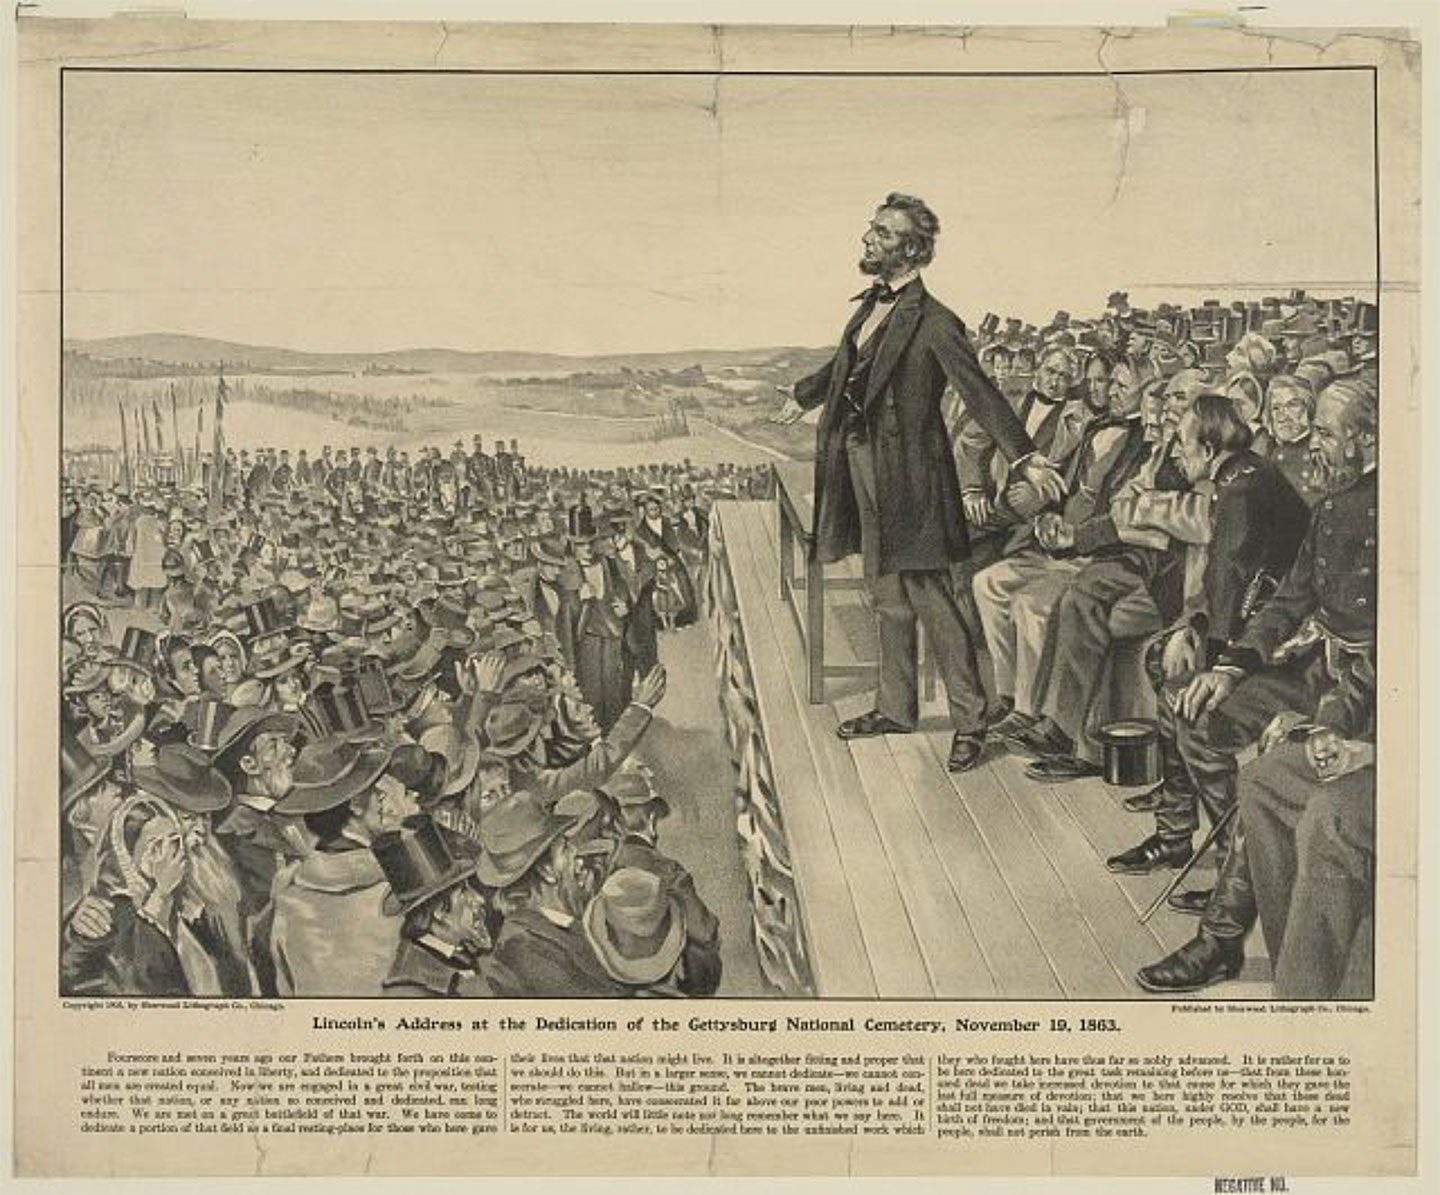 rint showing Abraham Lincoln standing on stage before a ground of people. Sherwood Lithograph Co., c1905. Library of Congress Prints and Photographs